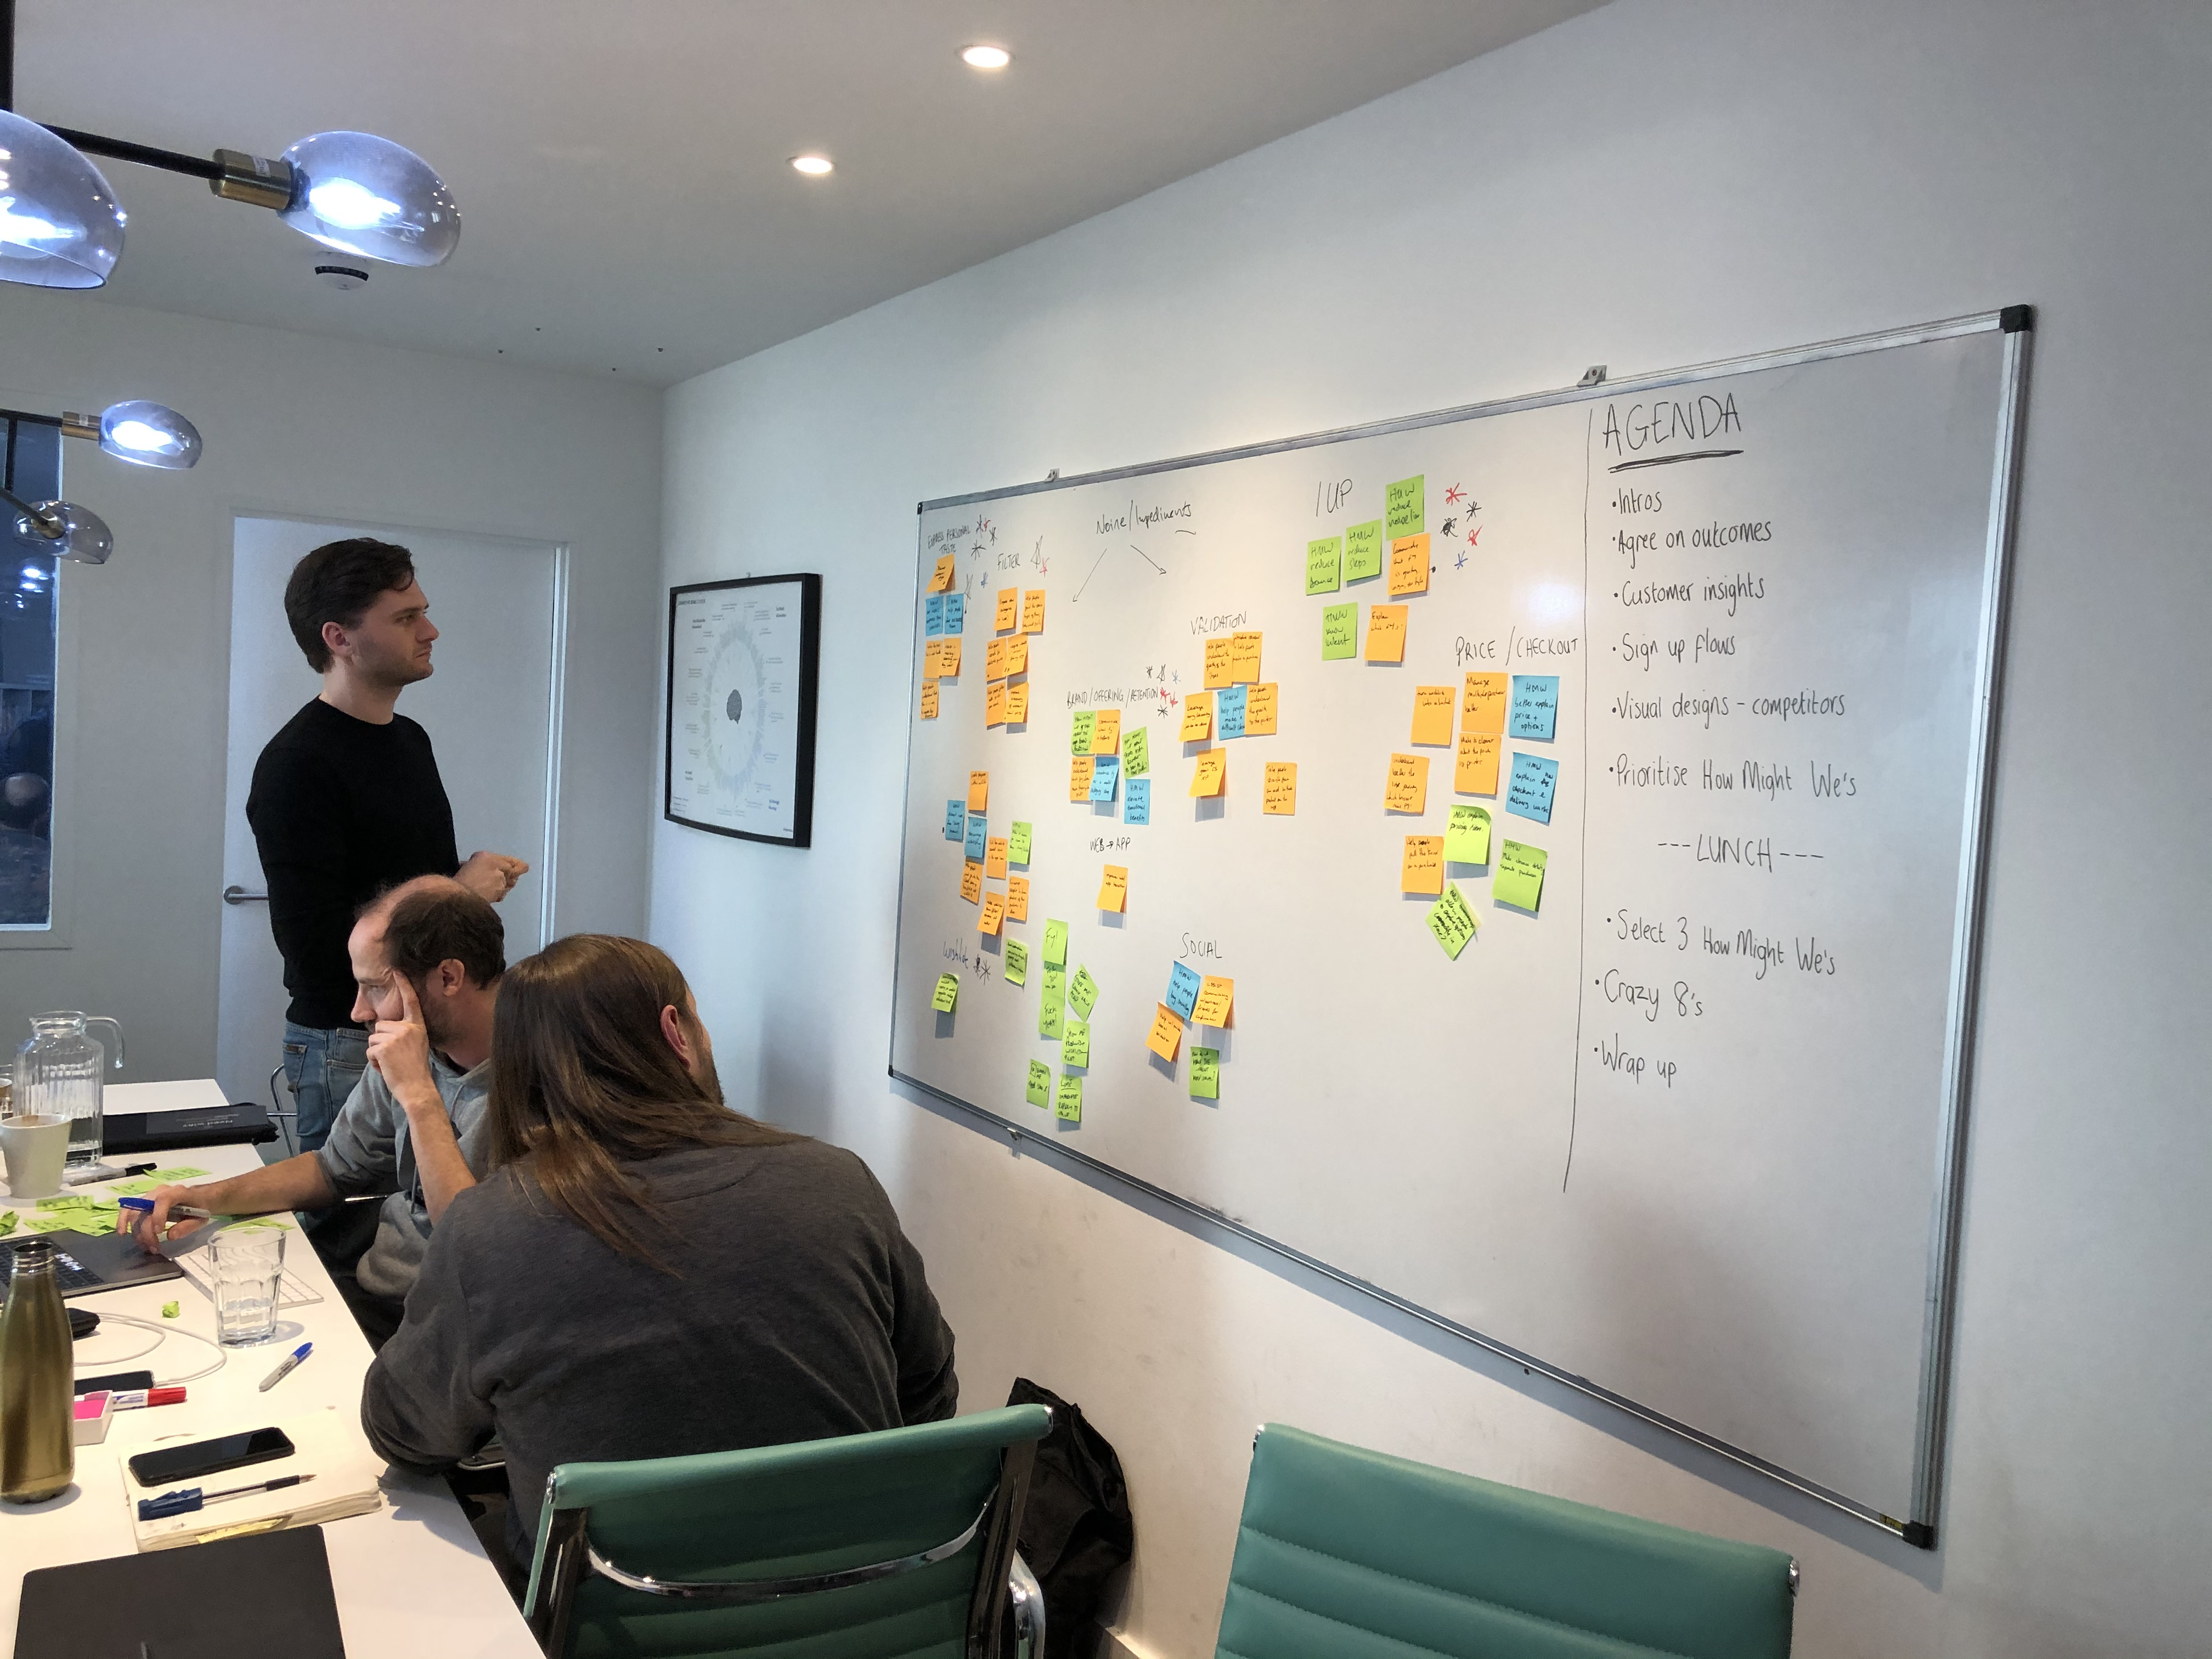 Grouping How Might We's during the design sprint with the founders of Fy!